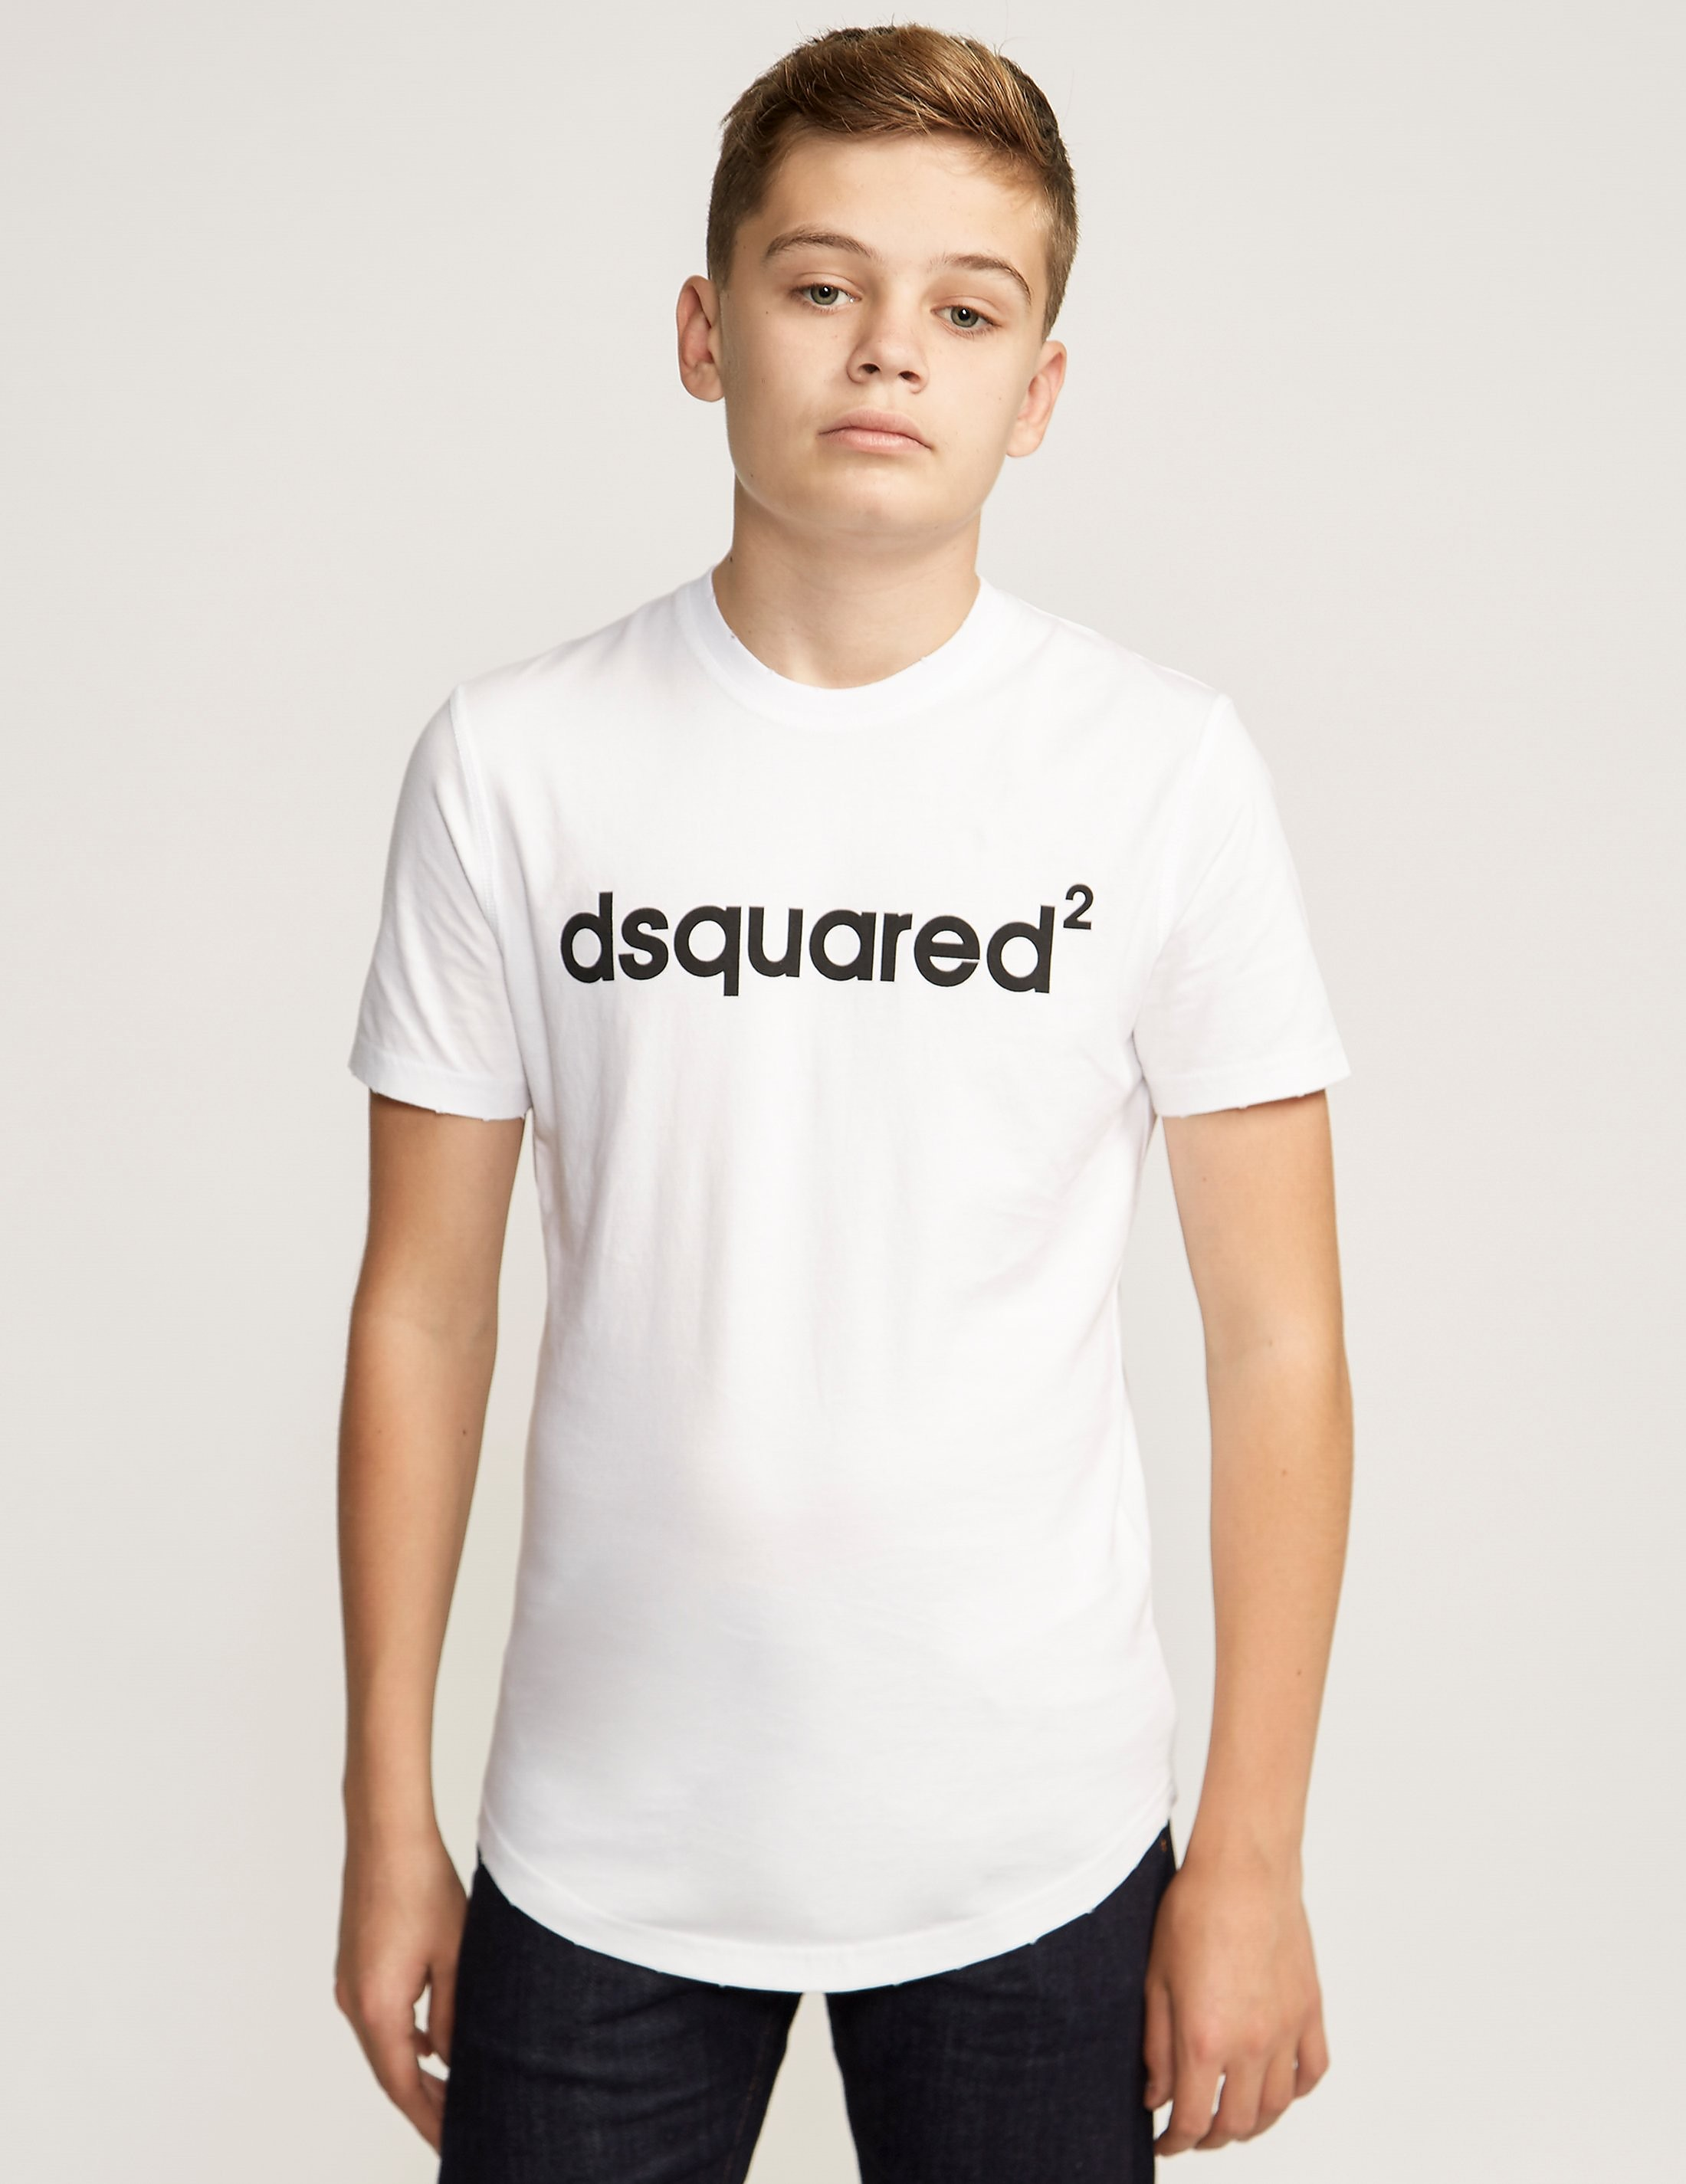 DSQUARED Kids' Script Logo T-Shirt